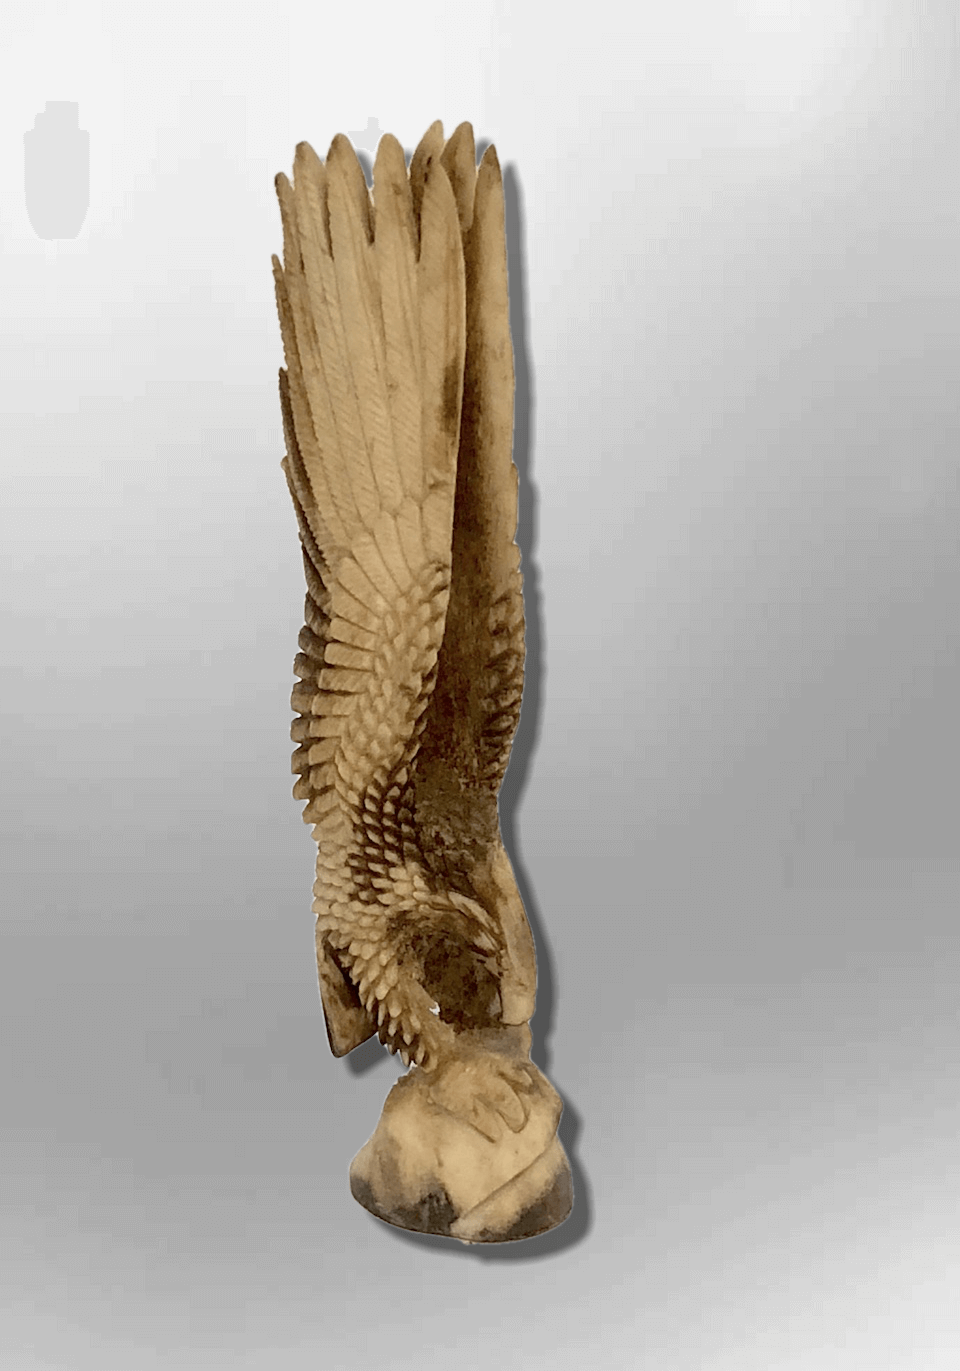 Bone Carved Handmade Full Landing Eagle Full Body No Paint Feather Detailed No W